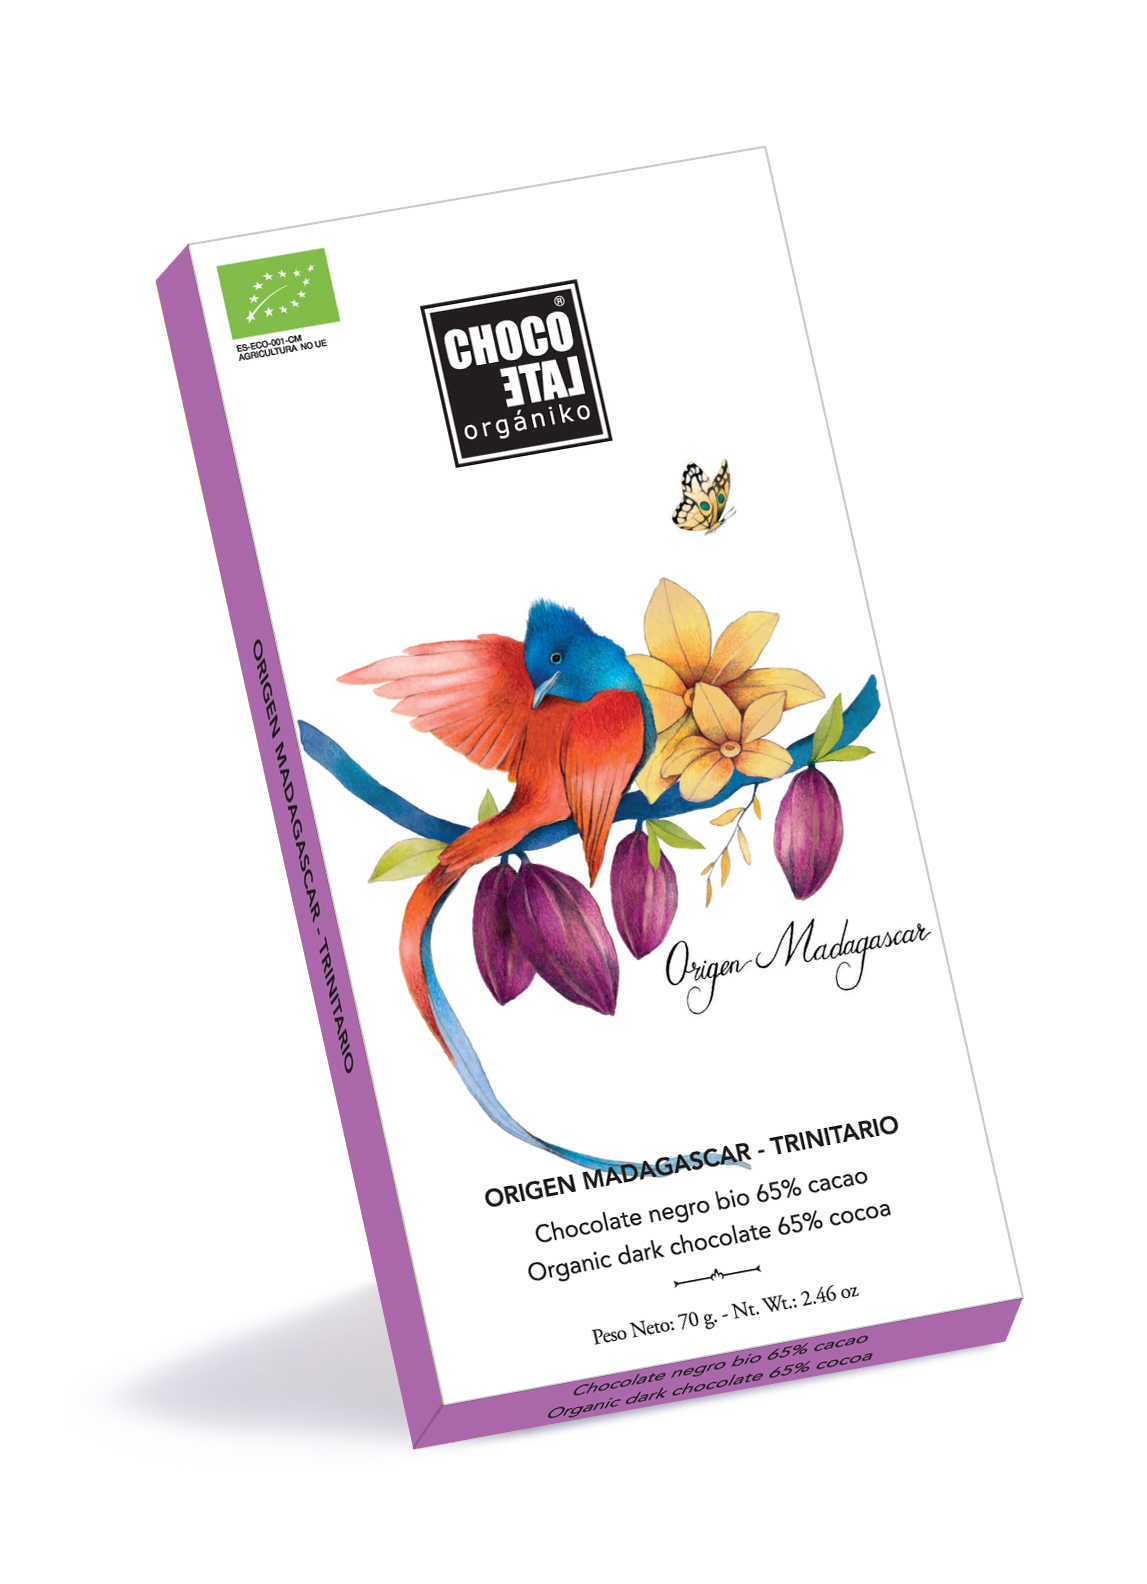 Organic dark chocolate 65% cocoa - Madagascar grand cru